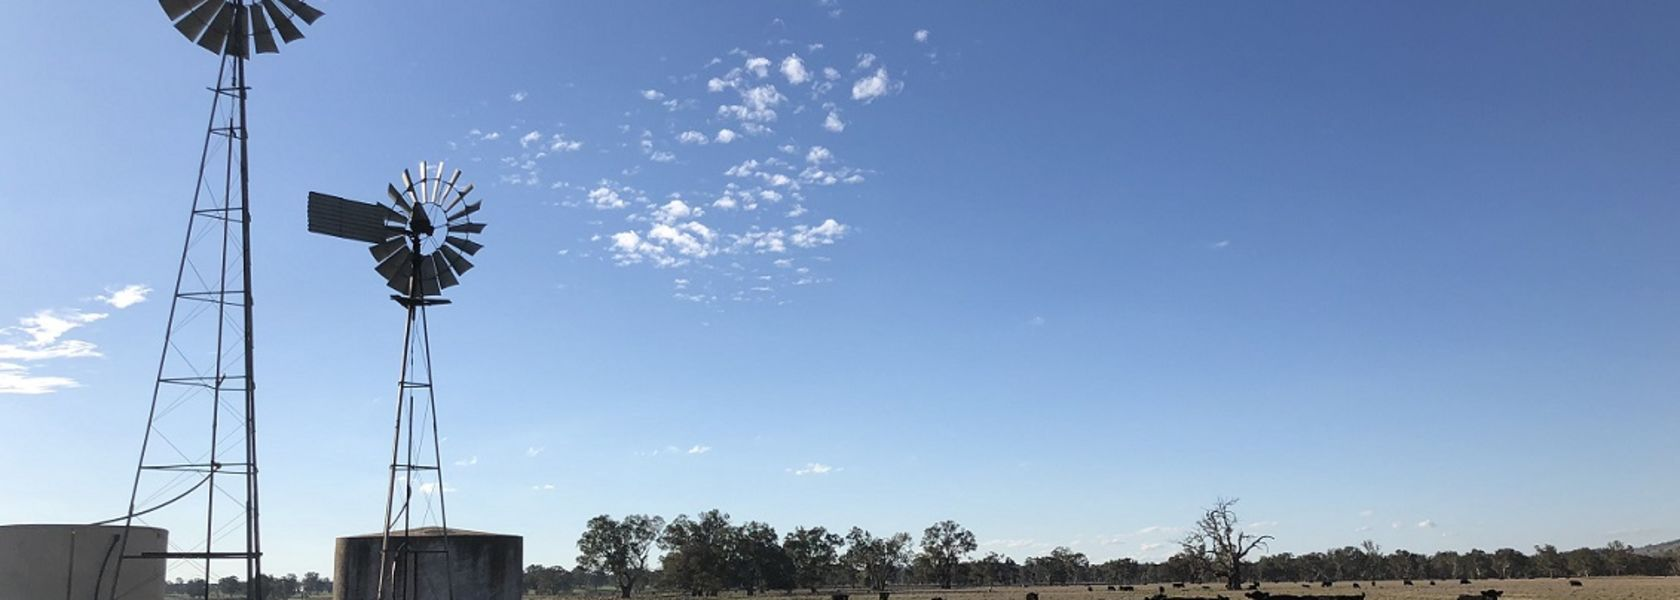 Australian farming sector holding up, despite drought